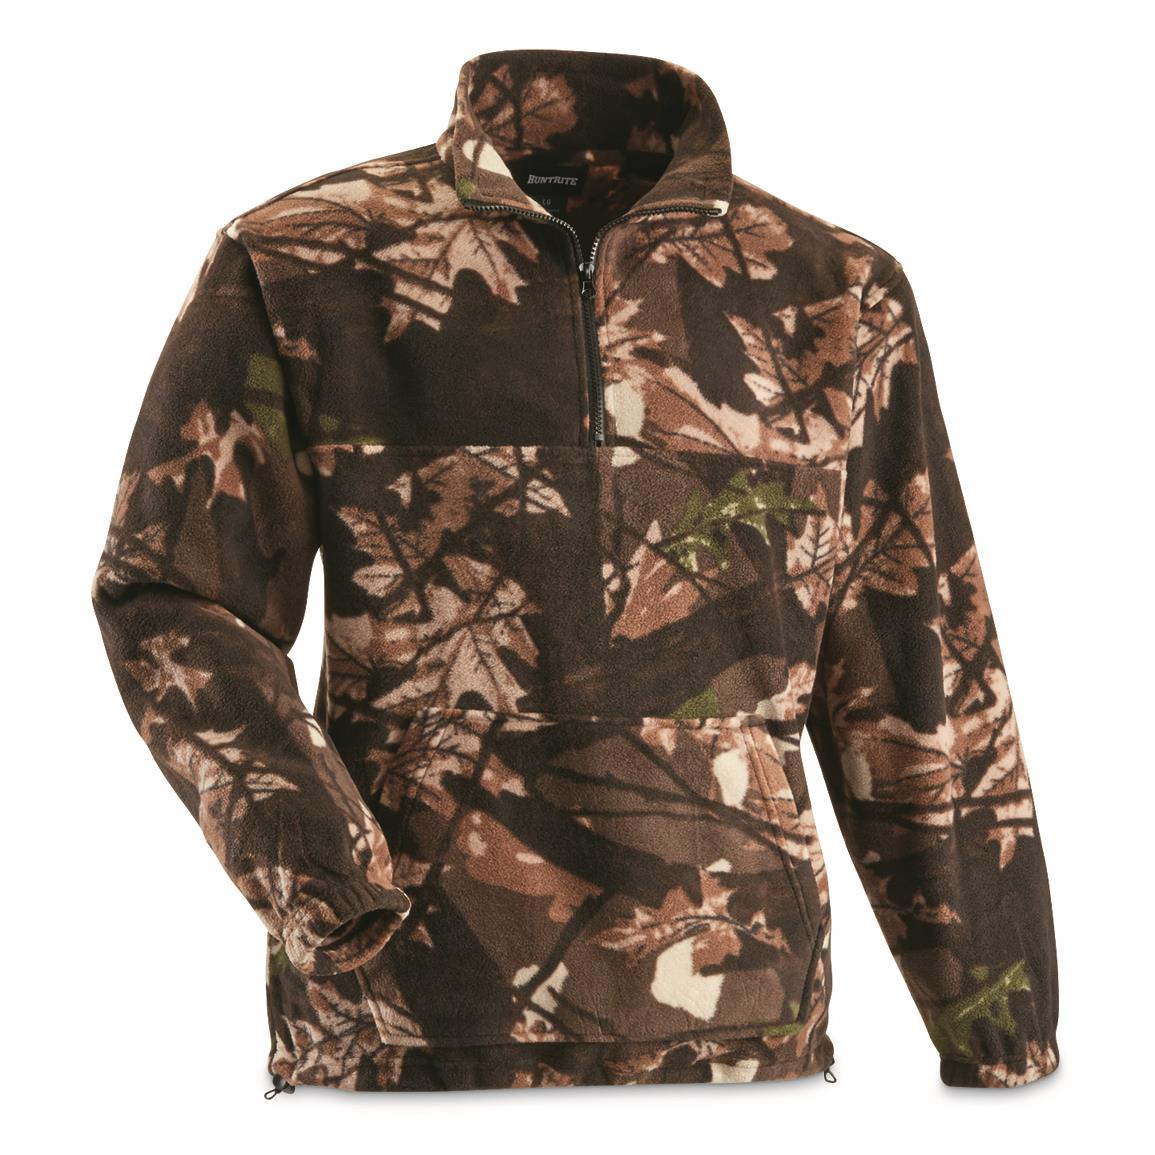 HuntRite Men's Quarter-zip Camo Fleece Pullover Jacket, Camo